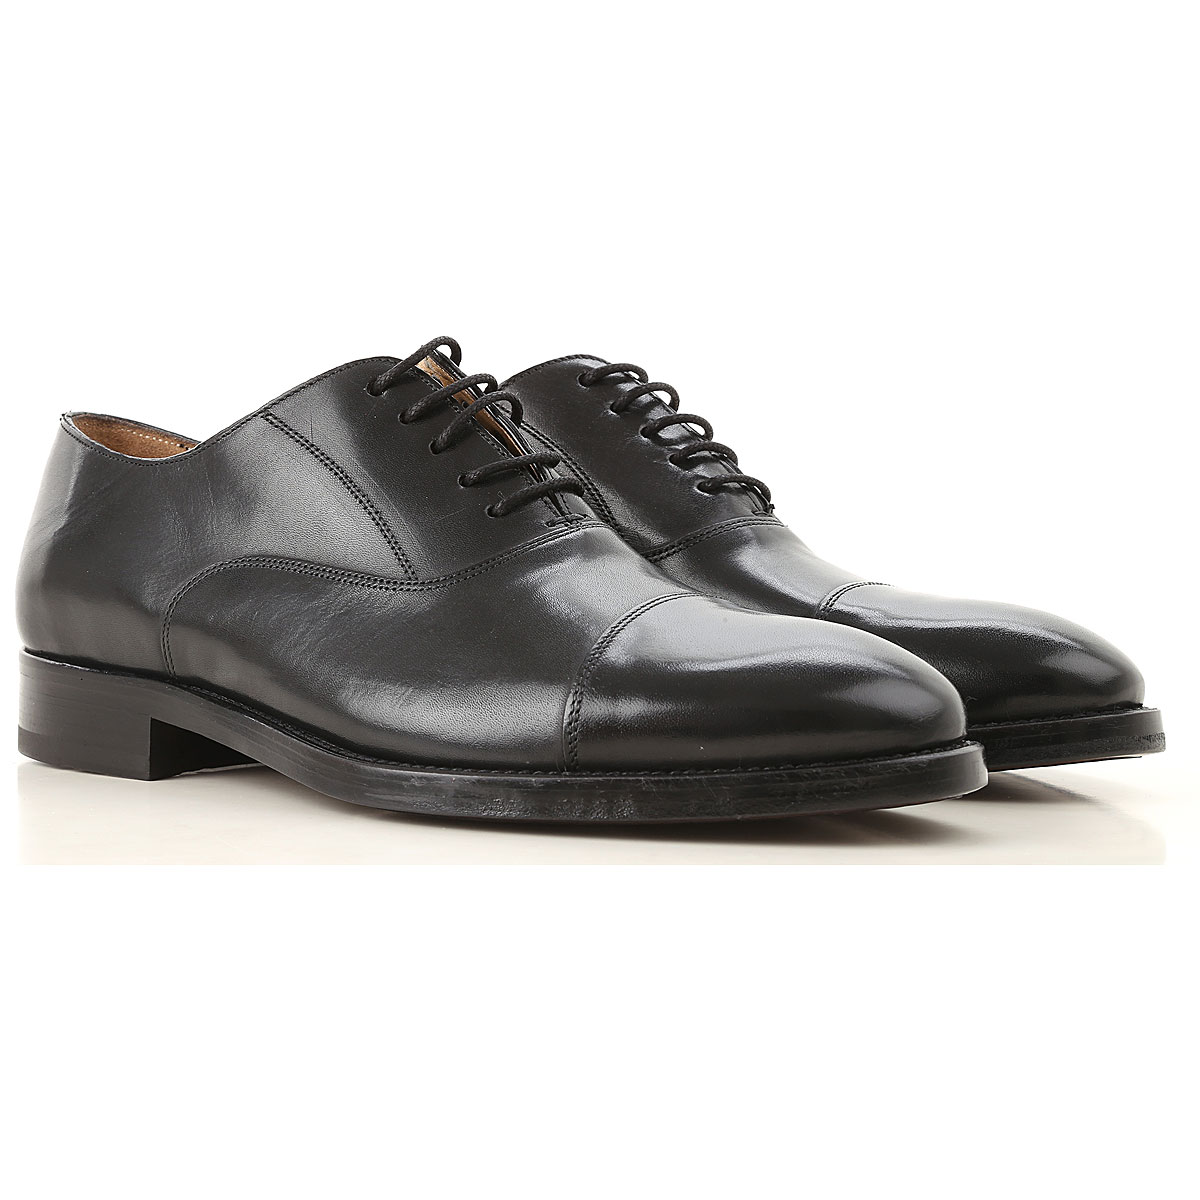 Brecos Lace Up Shoes for Men Oxfords Derbies and Brogues On Sale USA - GOOFASH